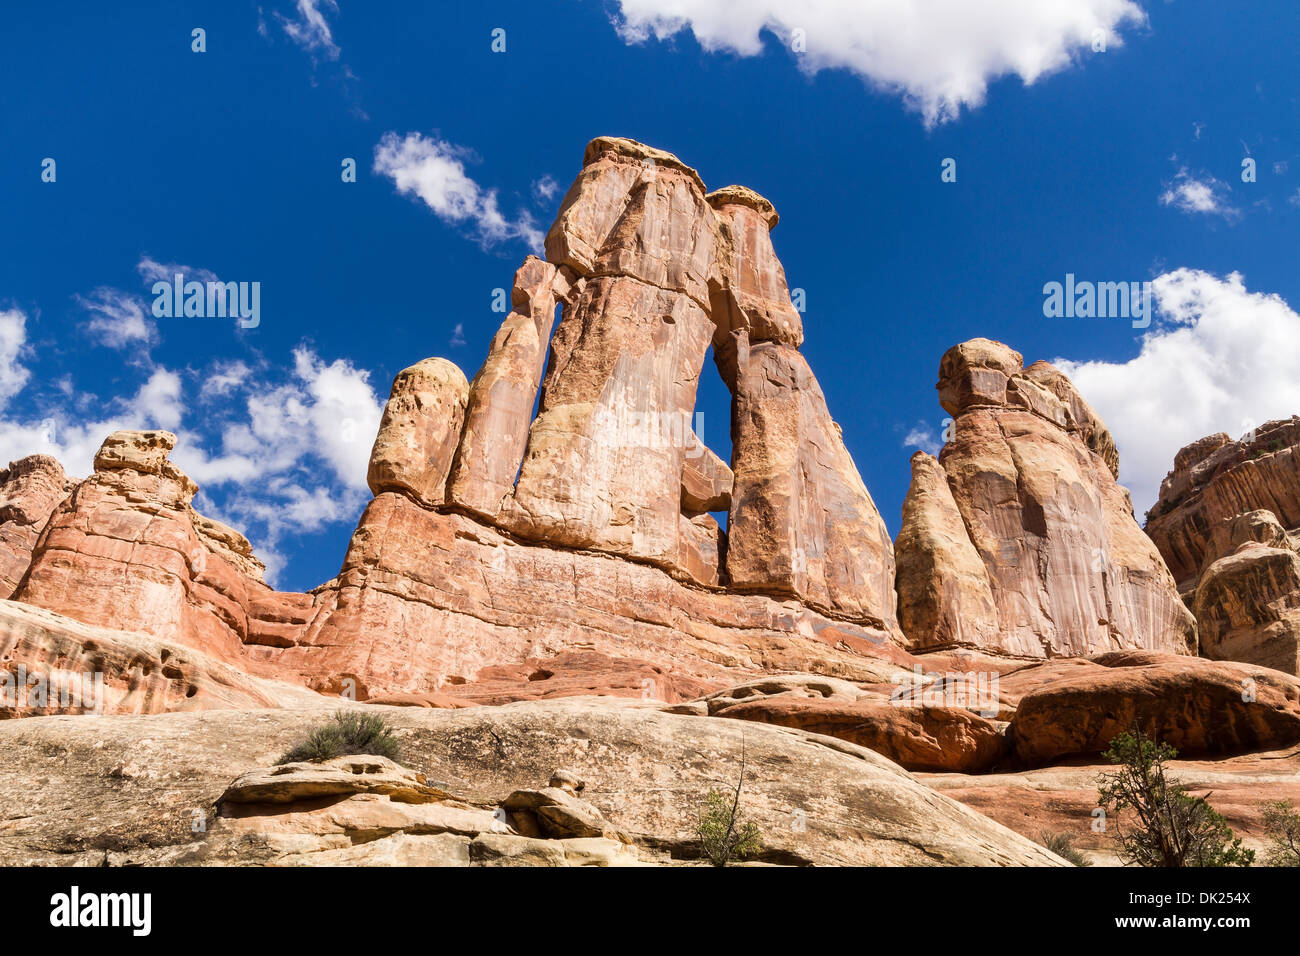 Iconic Druid Arch in Elephant Canyon with puffy clouds in the Needles District of Canyonlands National Park, Utah - Stock Image